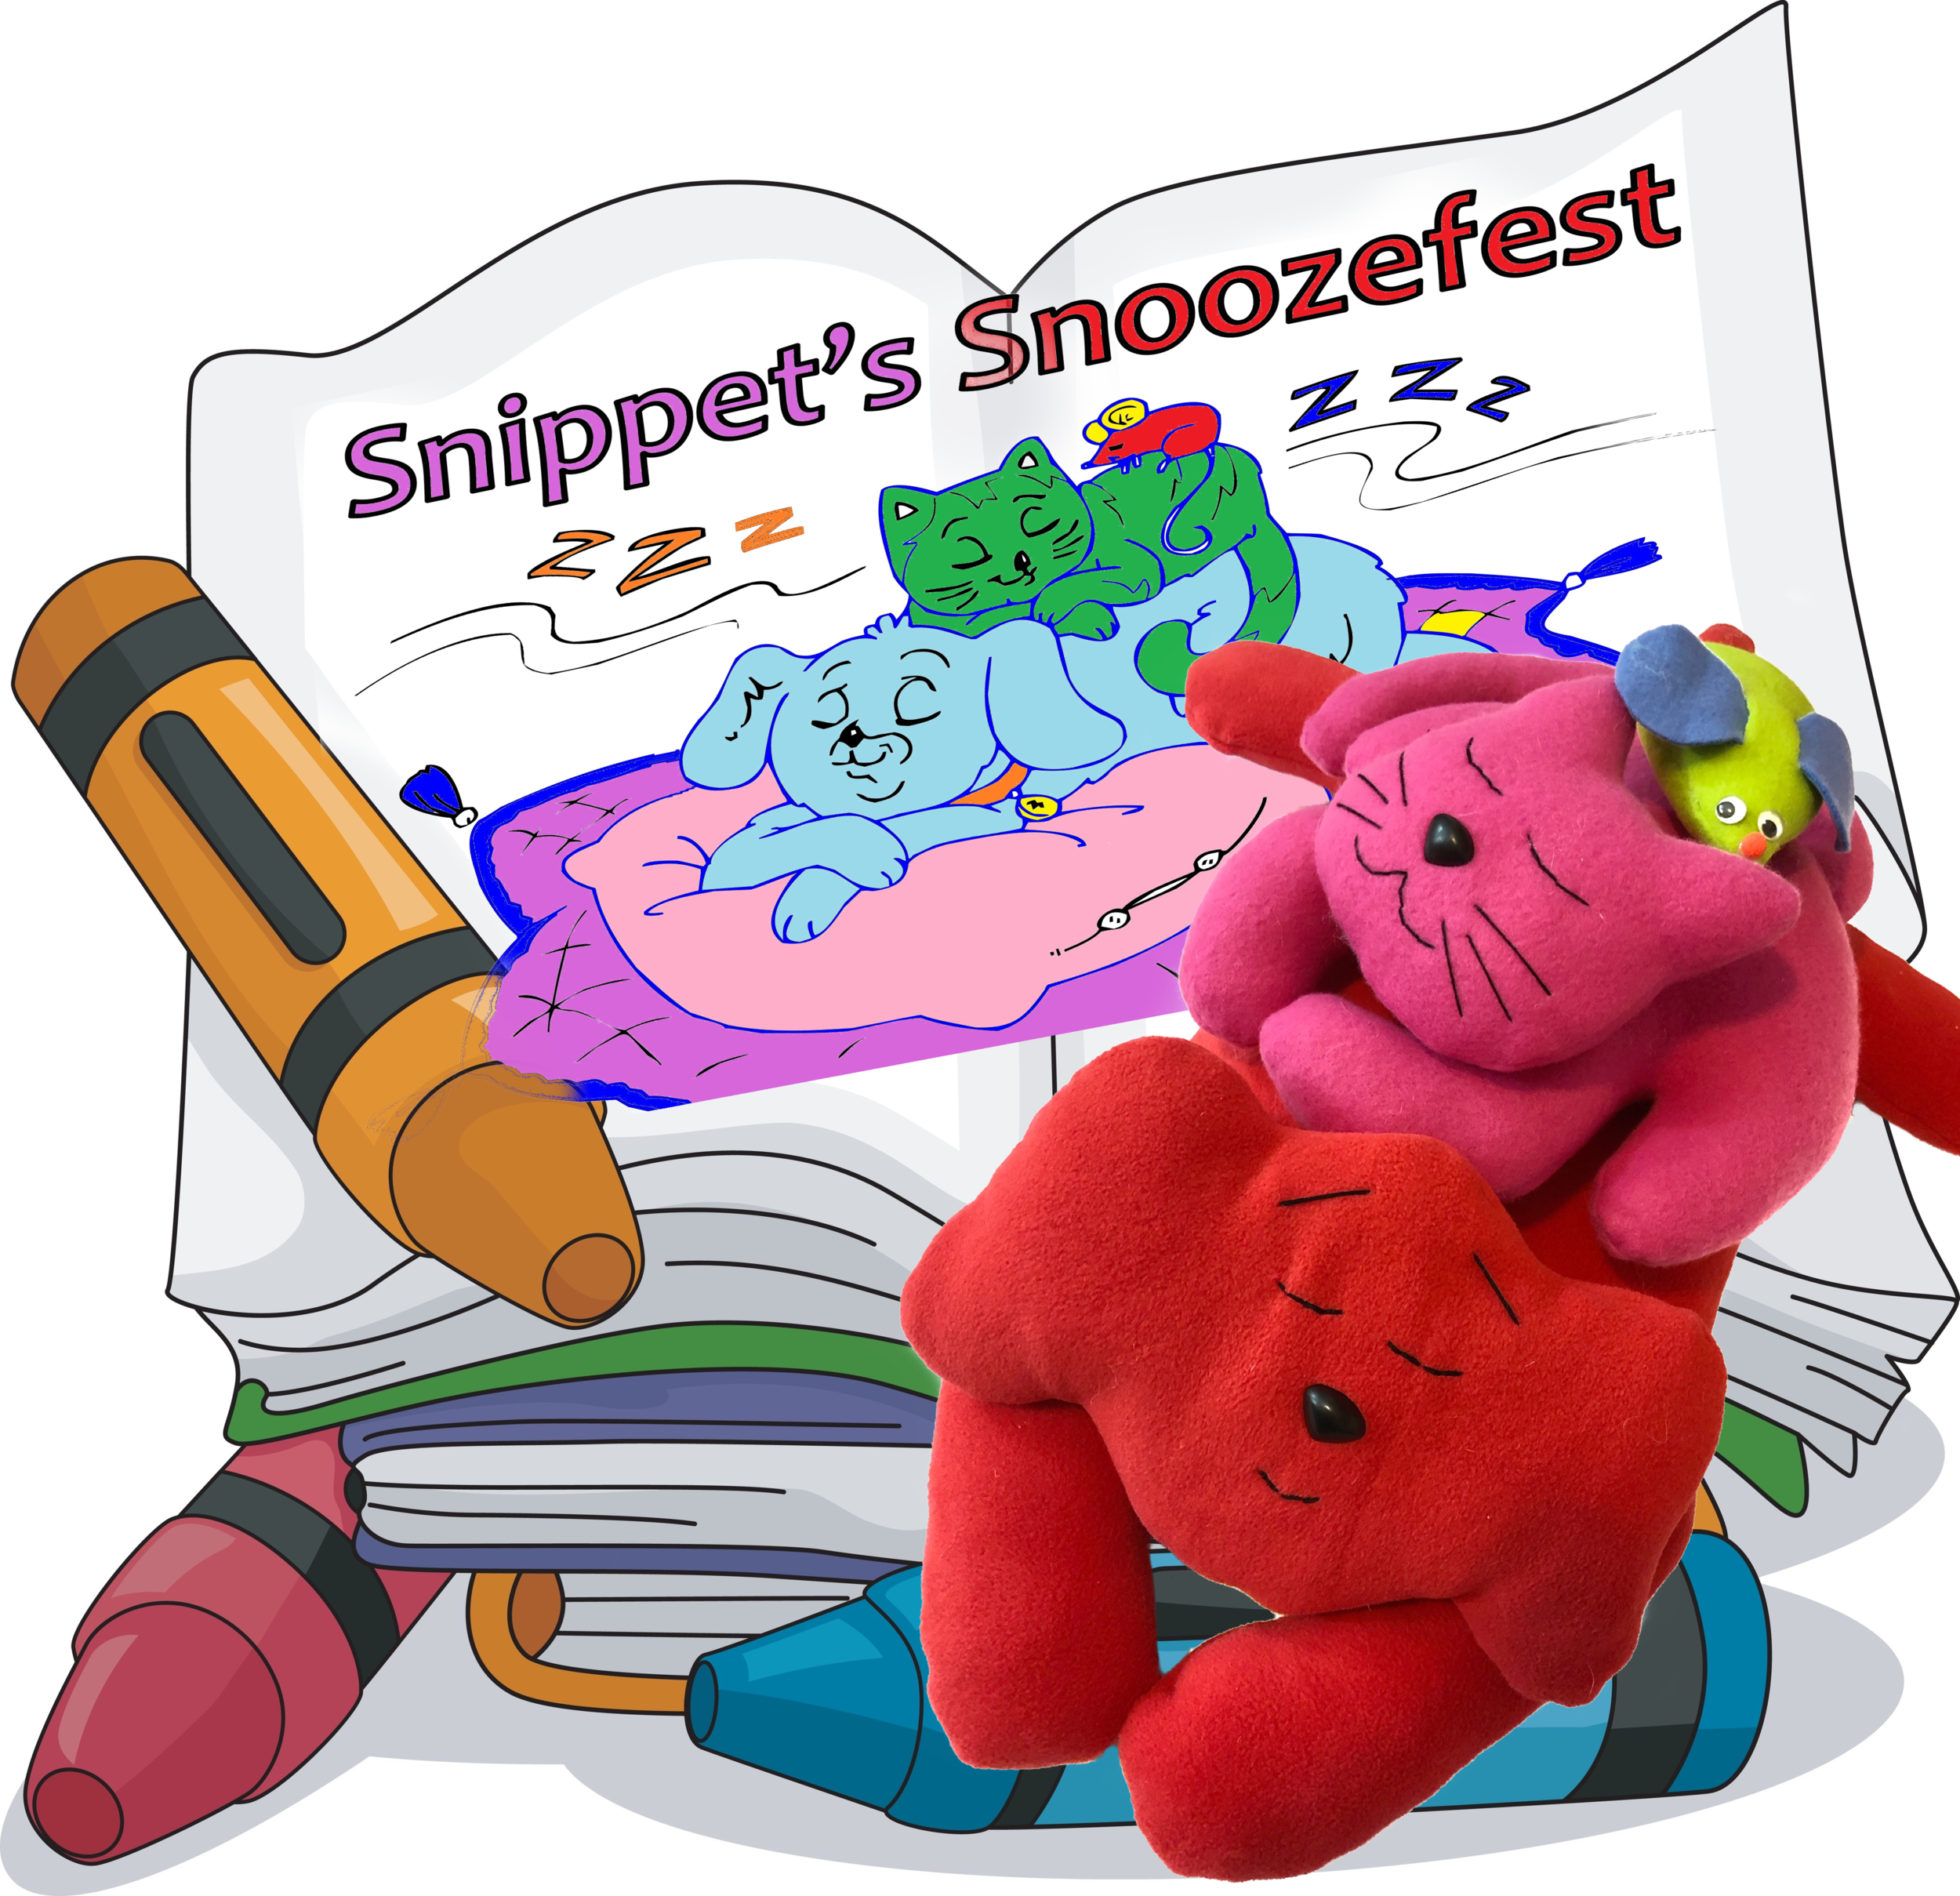 Snippet's Snoozefest - Animal patterns & coloring storybook